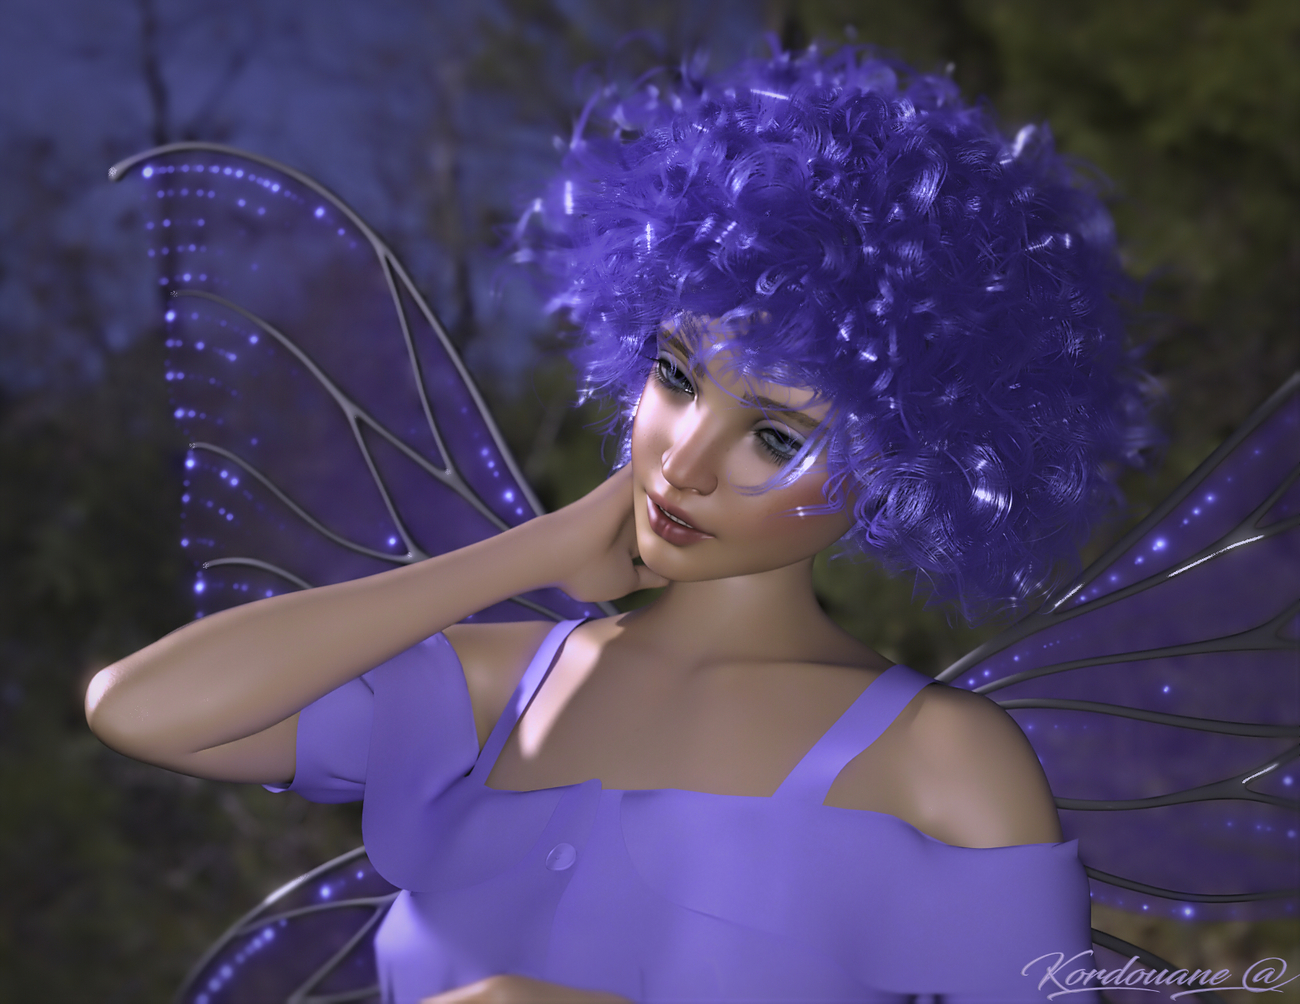 Catherine in Blue Fairy by kordouane